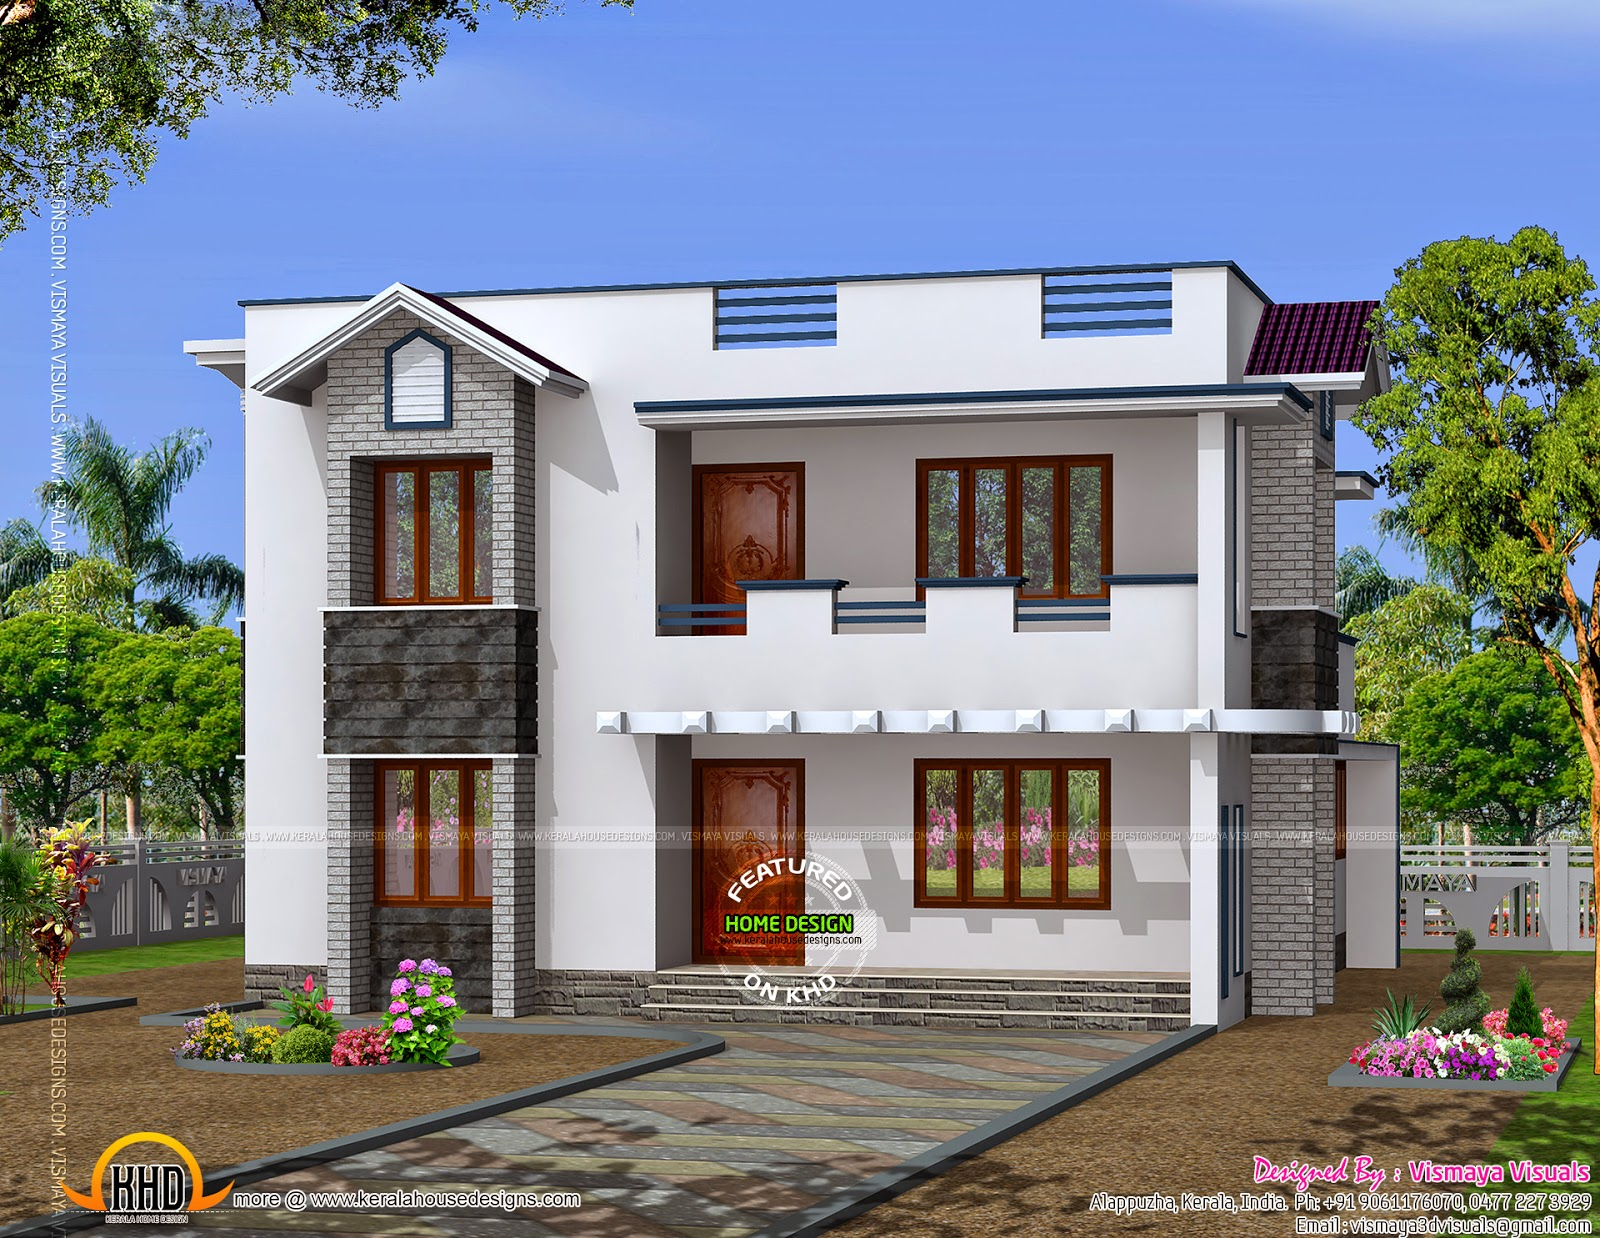 Simple design home kerala home design and floor plans for Simple home elevation design